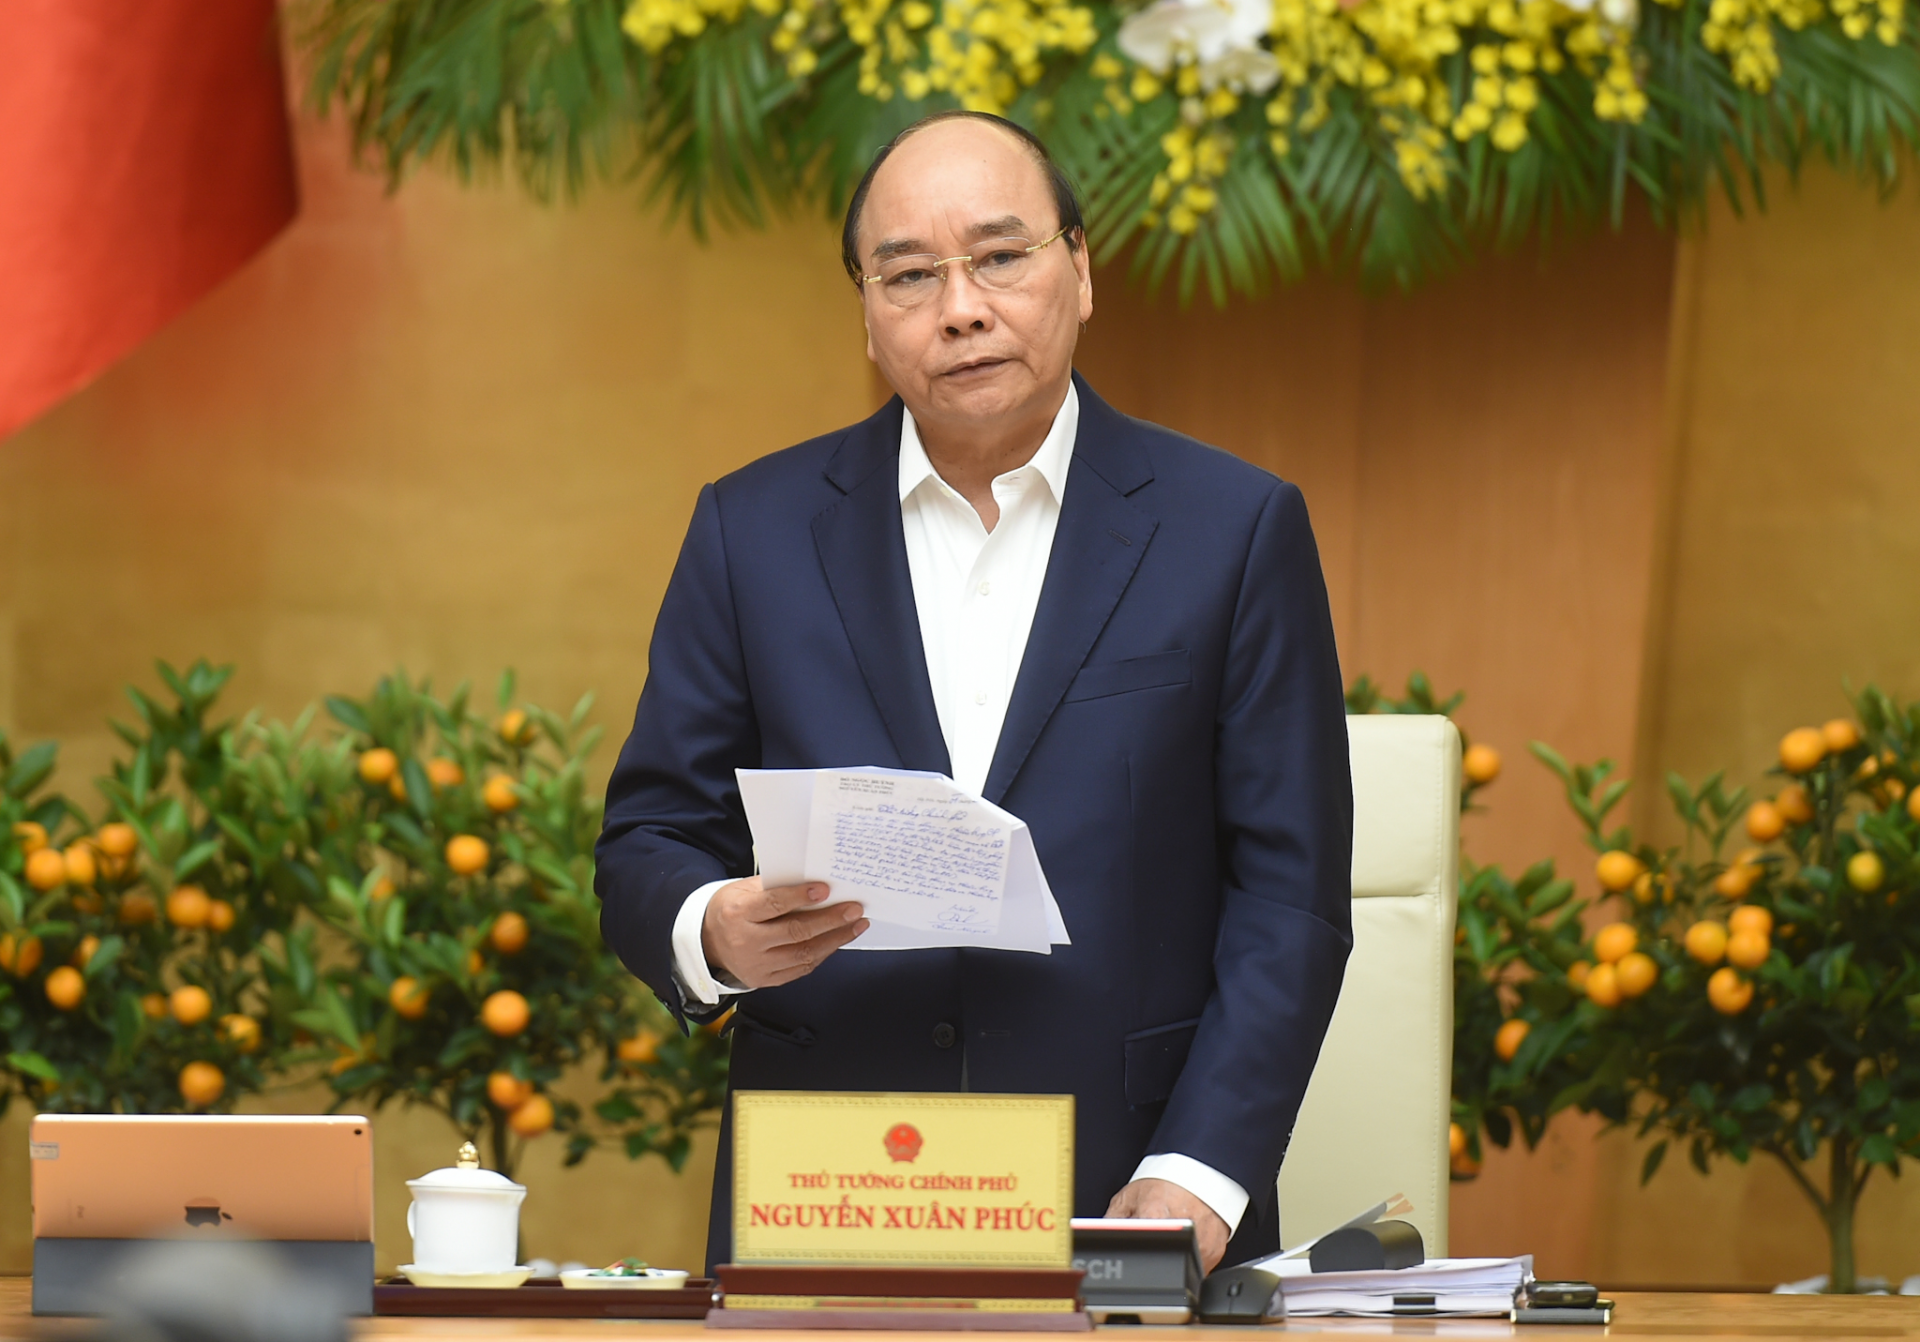 PM Nguyen Xuan Phuc requests COVID-19 vaccine supply to be ready in first quarter